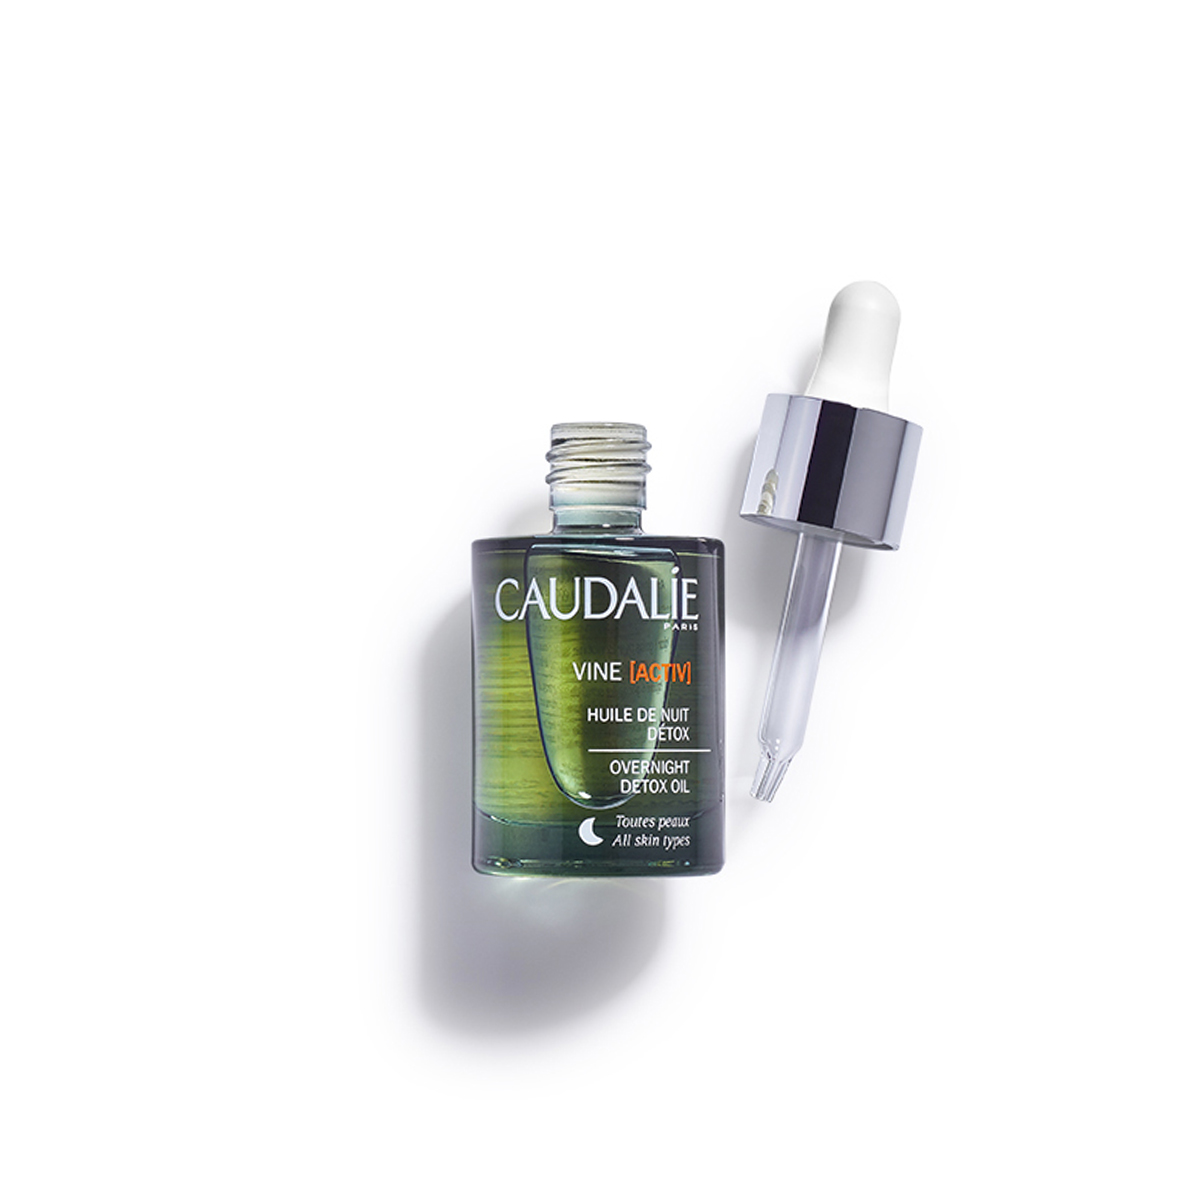 Vine[Activ] Overnight Detox Oil